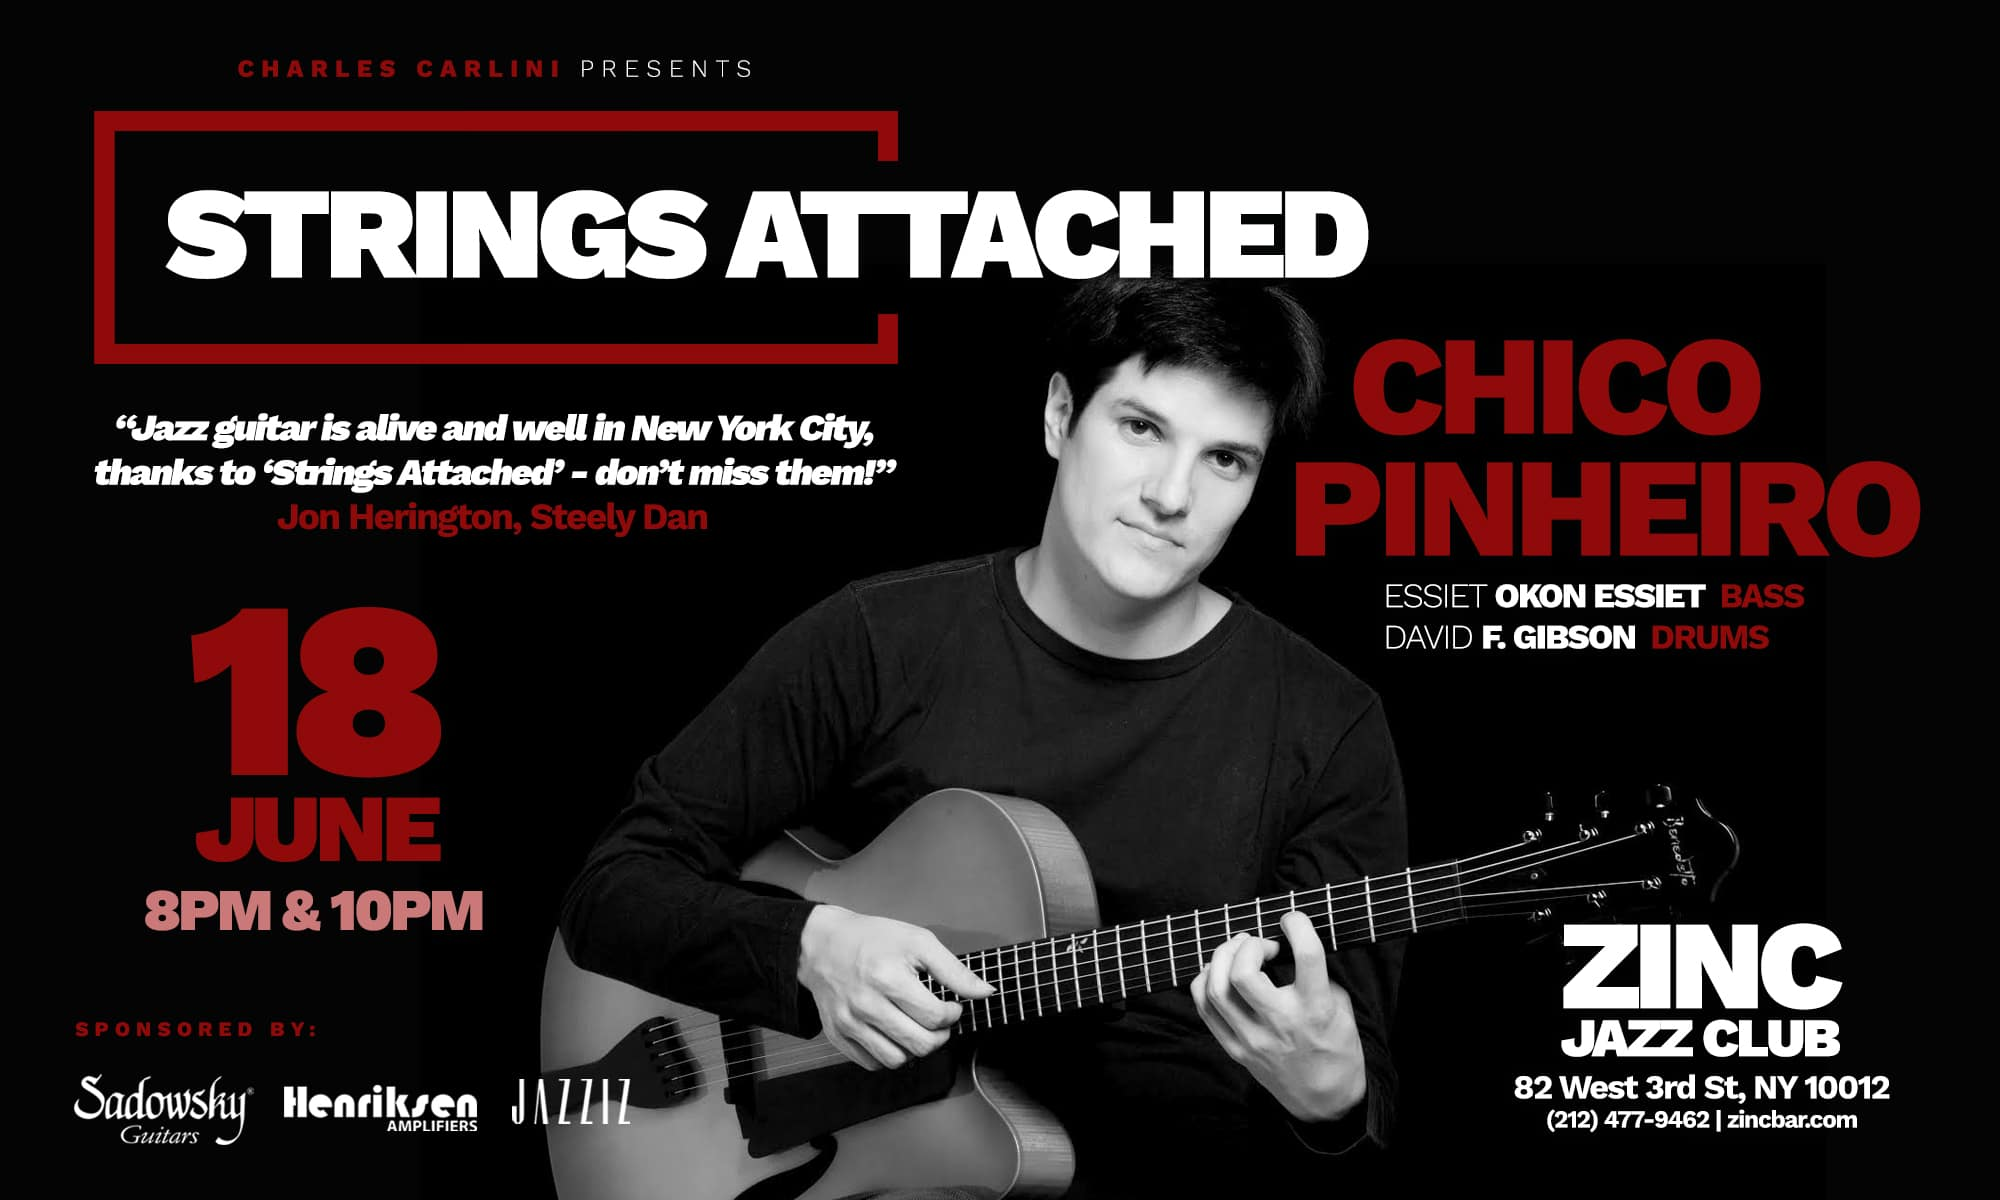 strings-attached-20180618-chico-pinheiro-eflyer